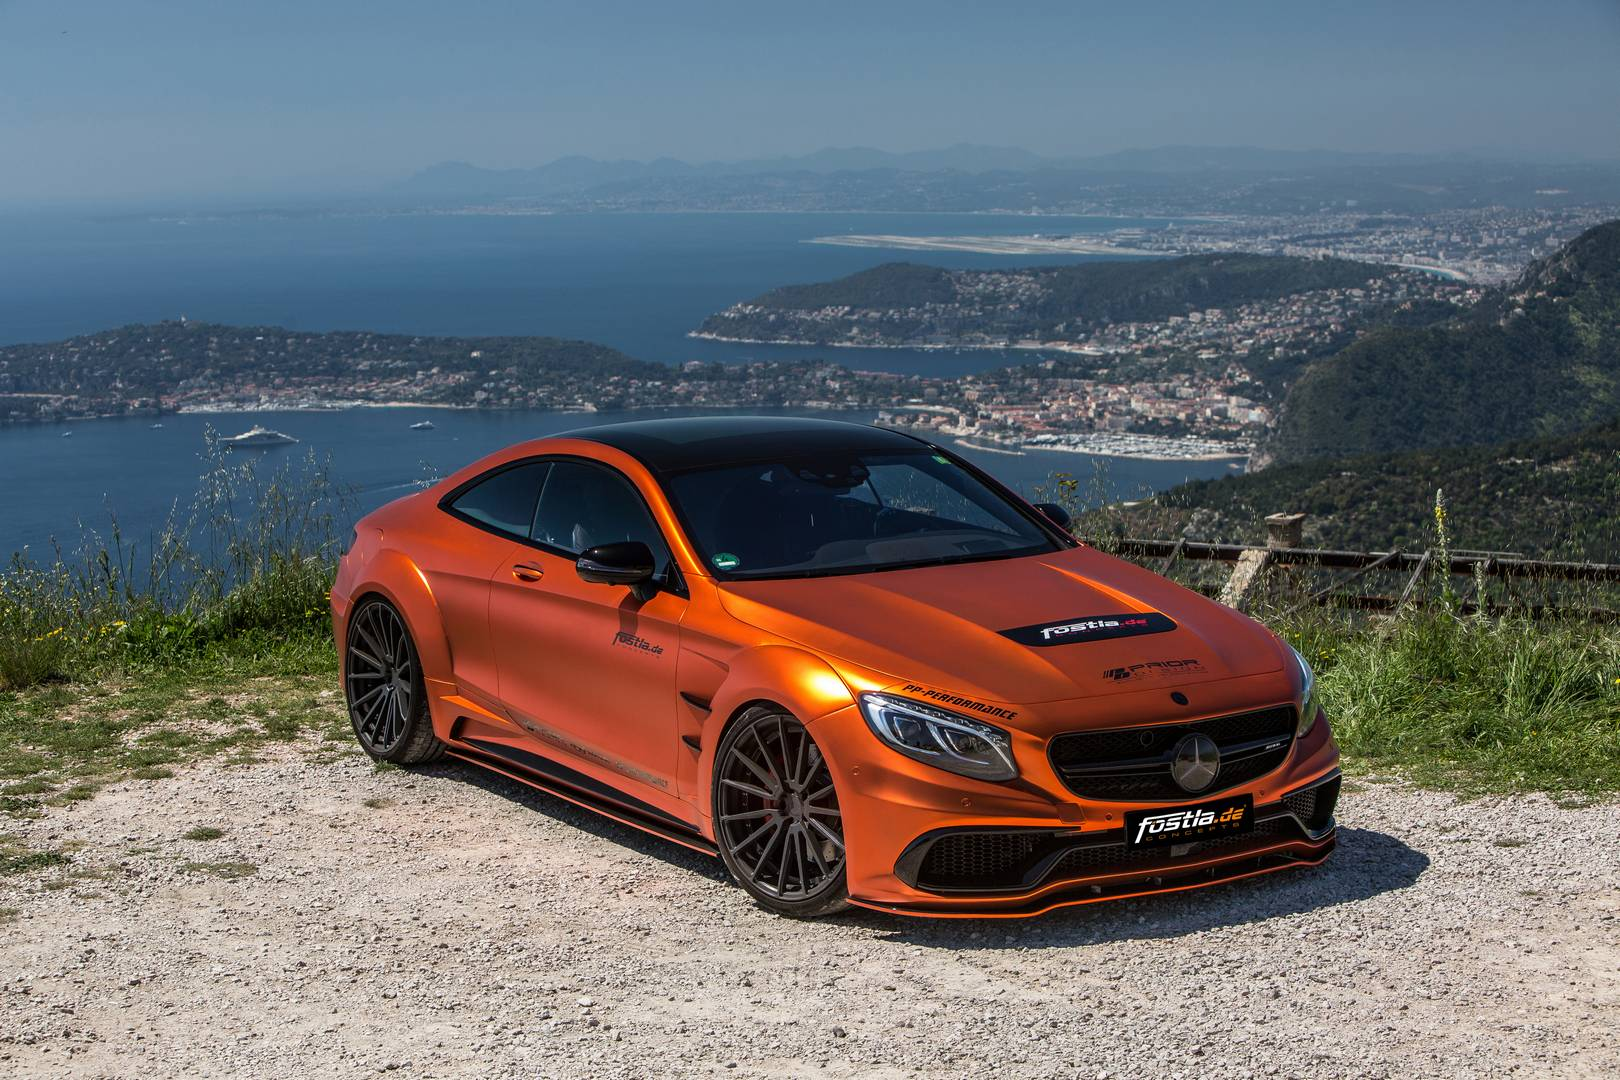 S63 2018 >> 740hp Orange Chrome Matt Mercedes-AMG S63 by Fostla.de - GTspirit